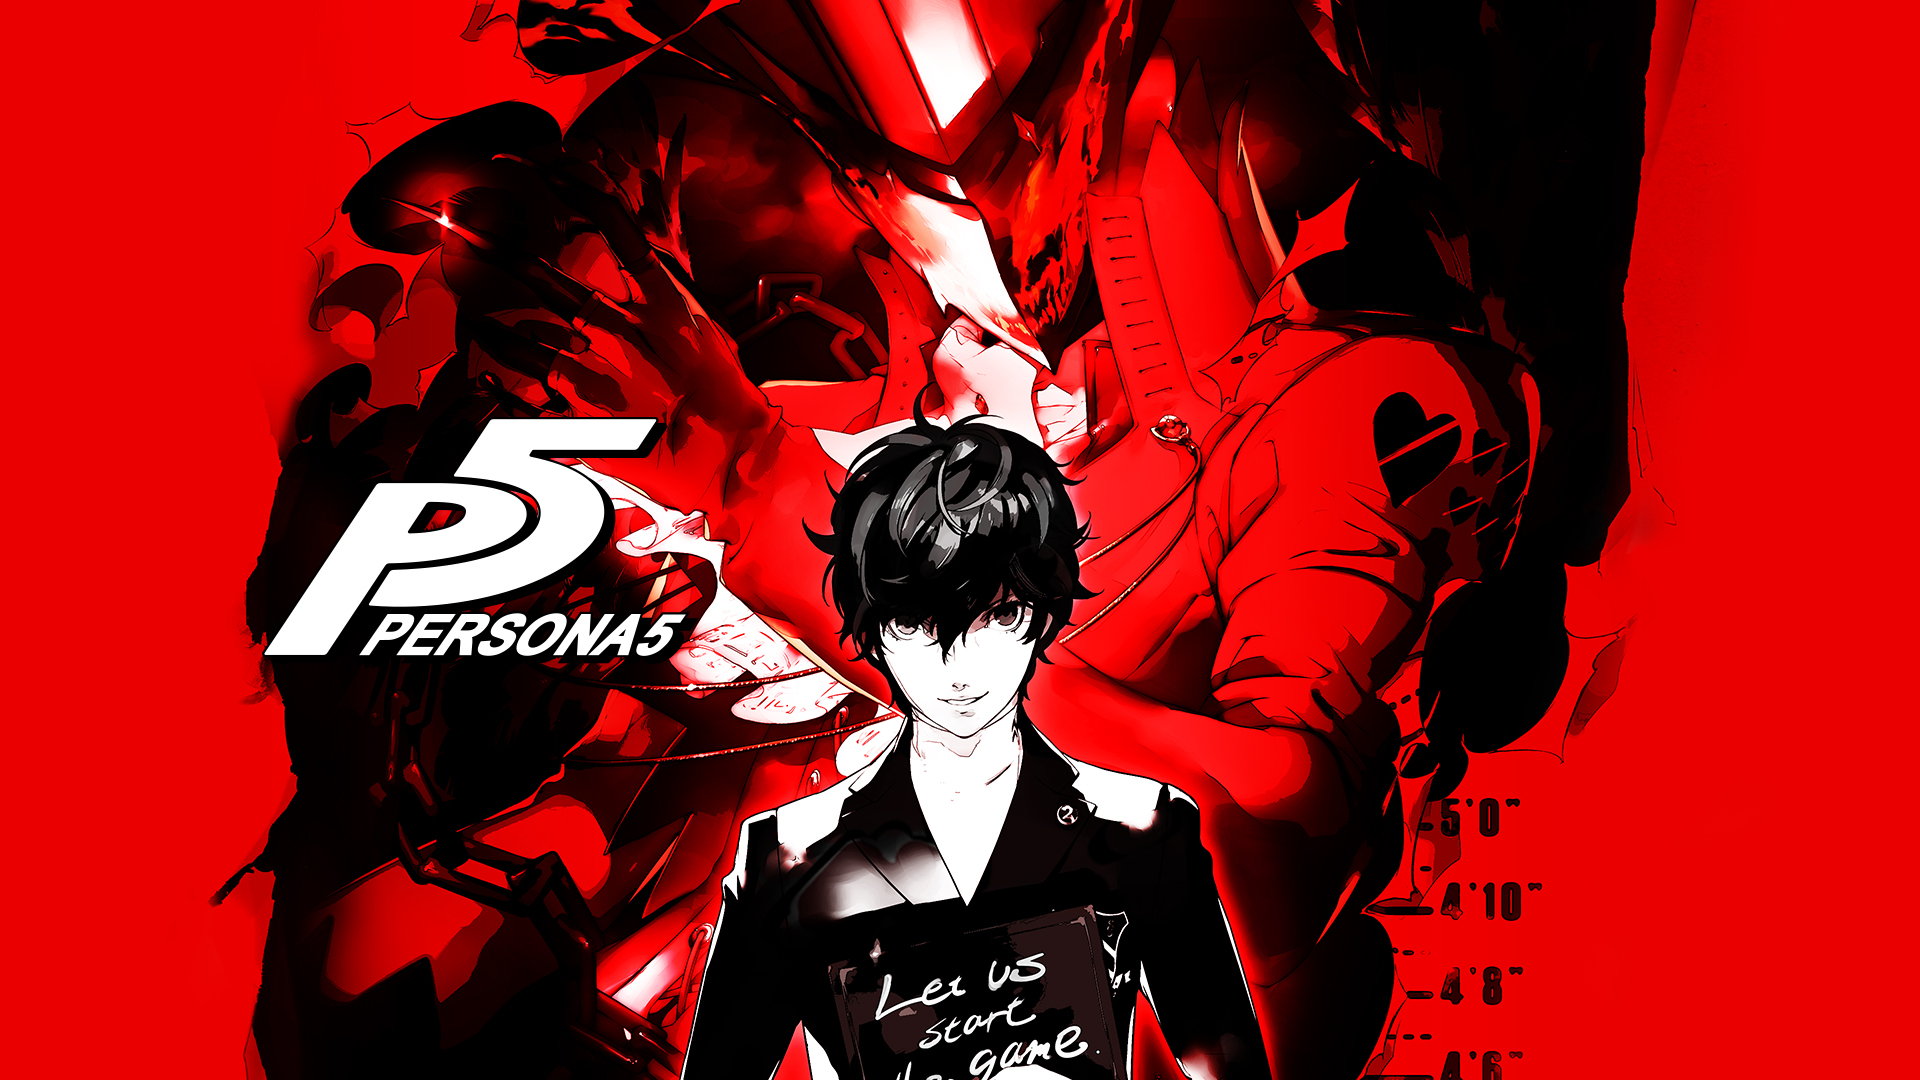 Persona 5 S To Release On Nintendo Switch During Fall 2019